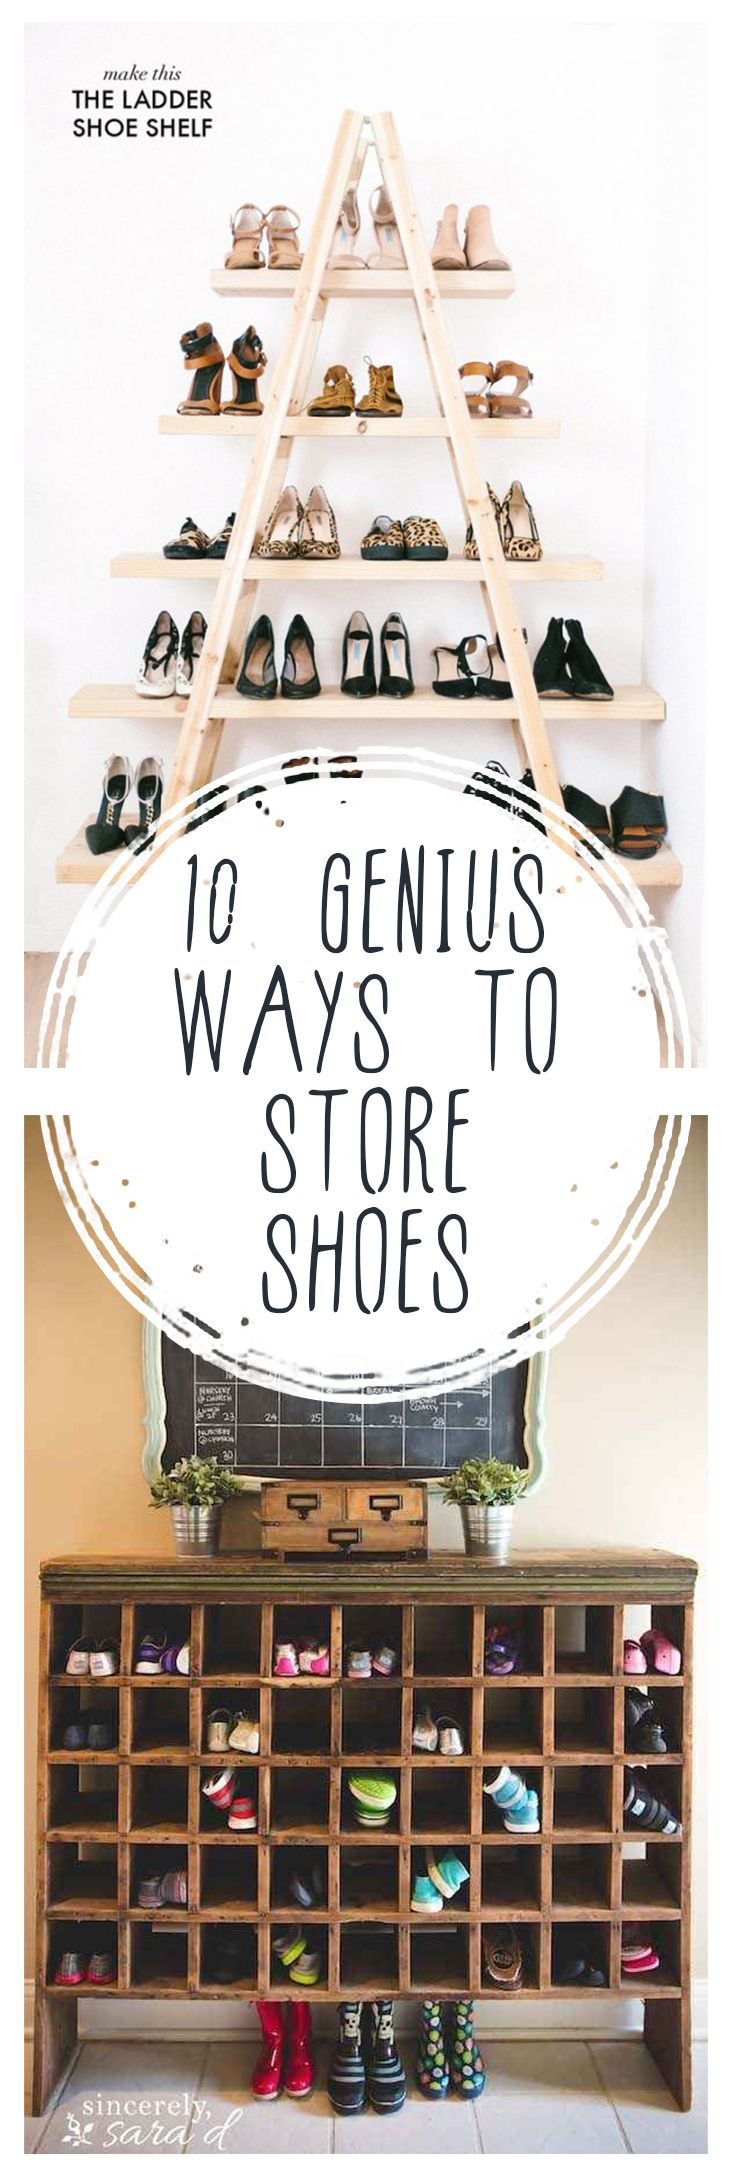 10 Genius Ways to Store Shoes